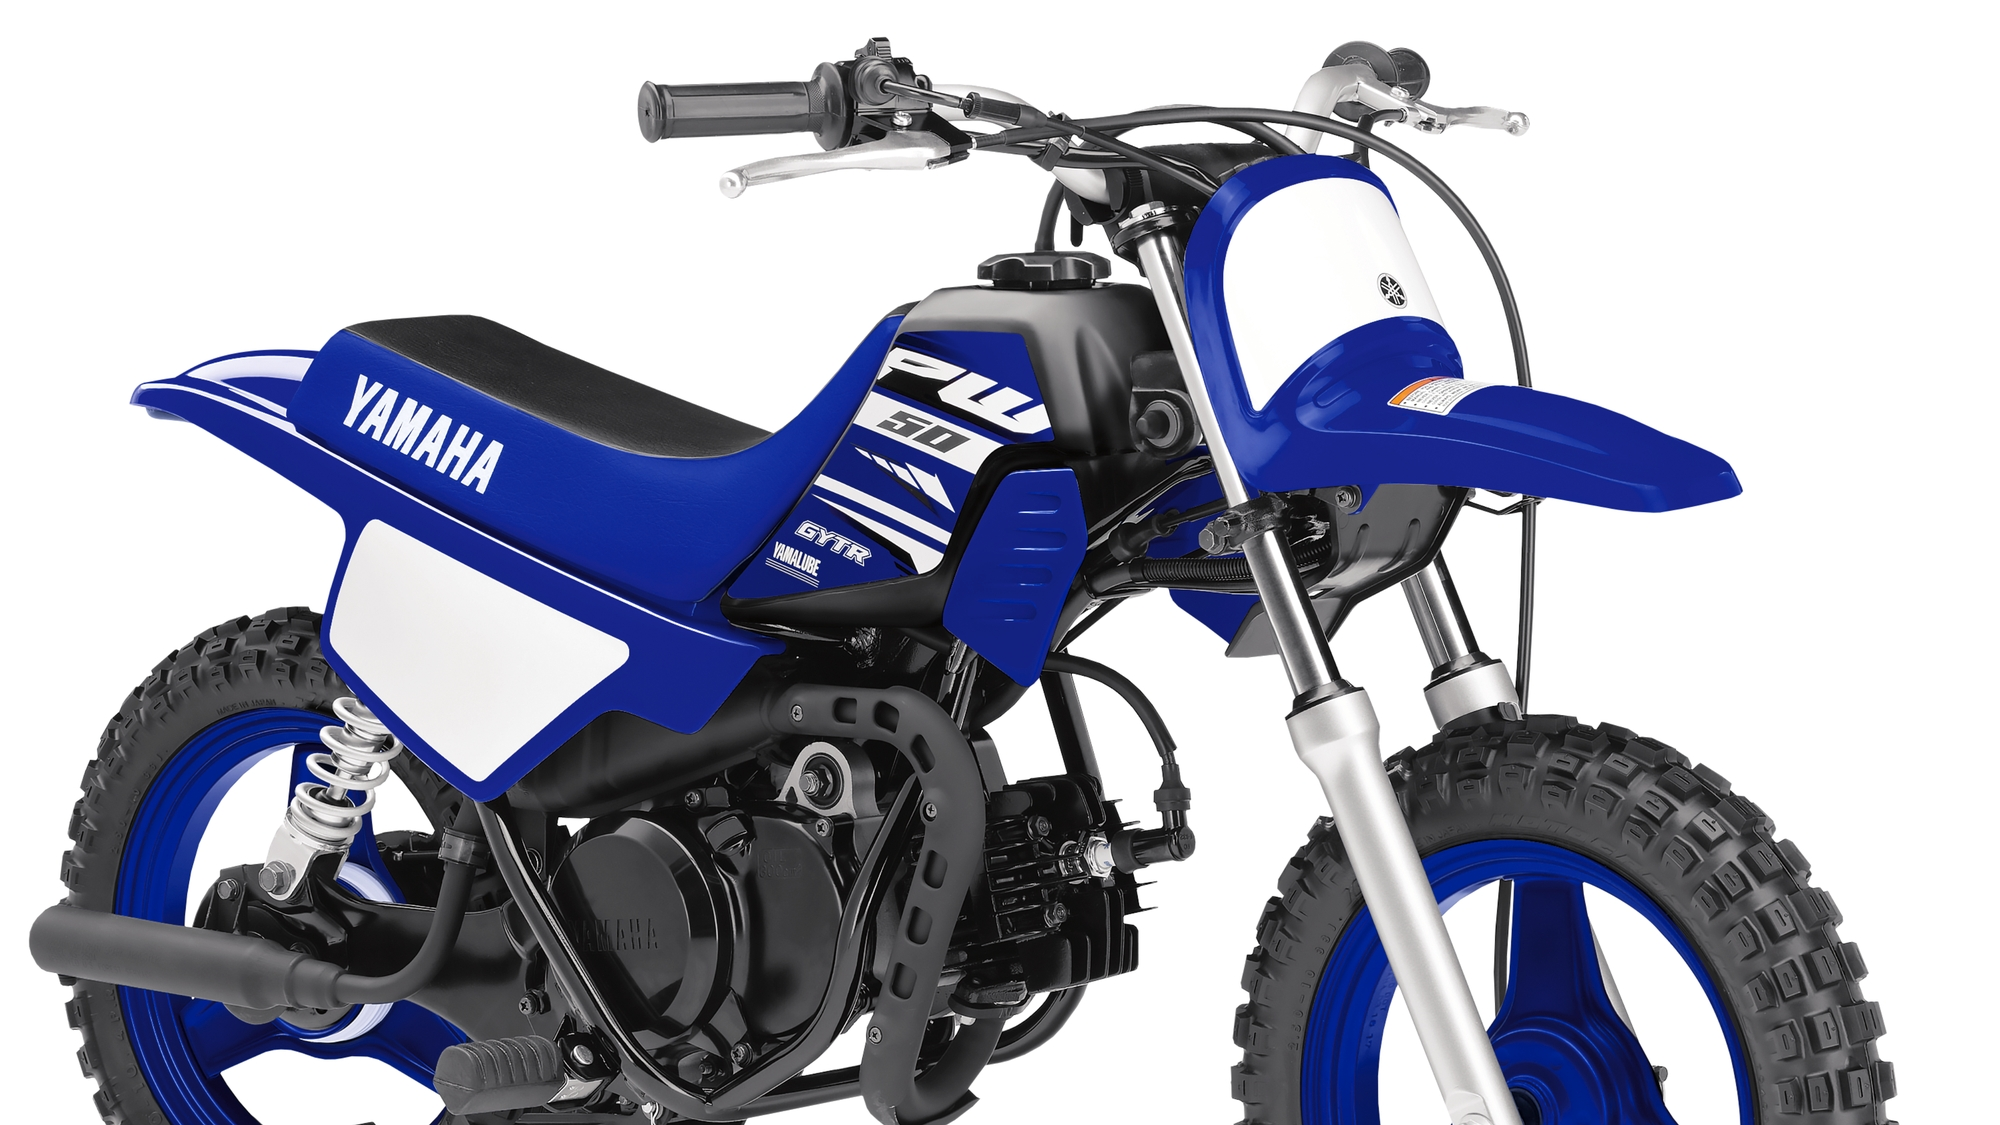 Yamaha PW50 - Features and Technical Specifications